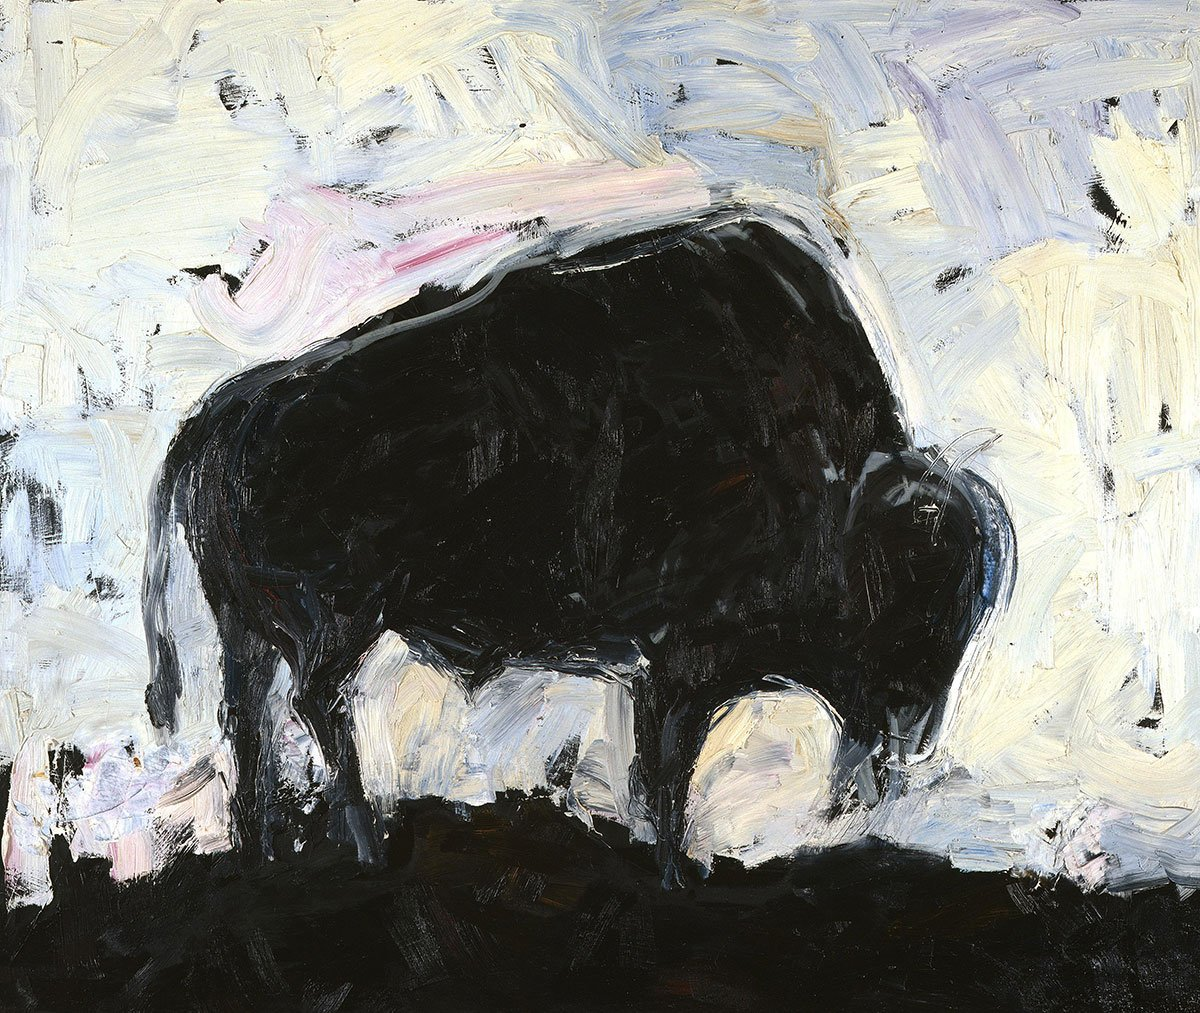 "Waddell, Theodore (b. 1941). ""Buffalo #2,"" 1986. Oil on canvas, 60 x 72 inches. Purchased by a grant from the National Endowment for the Arts, a federal agency, and William D. Weiss. 4.91"